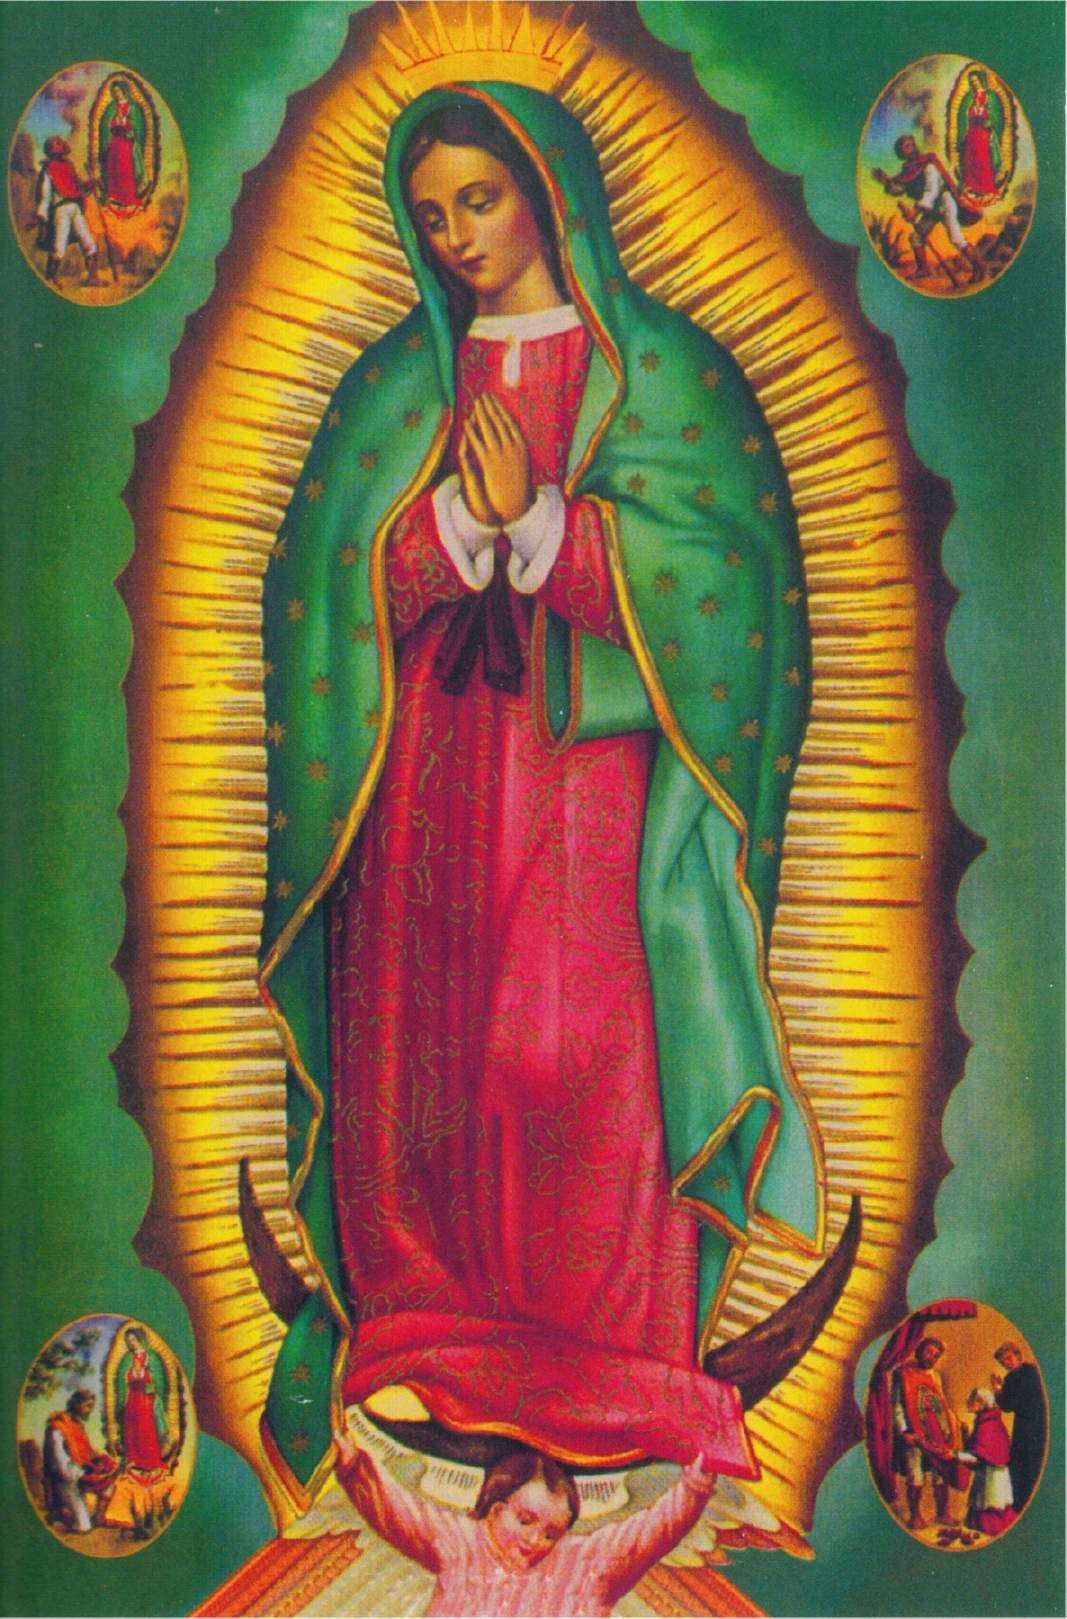 Our Lady Of Guadalupe Blessed Virgin Mary Postcard